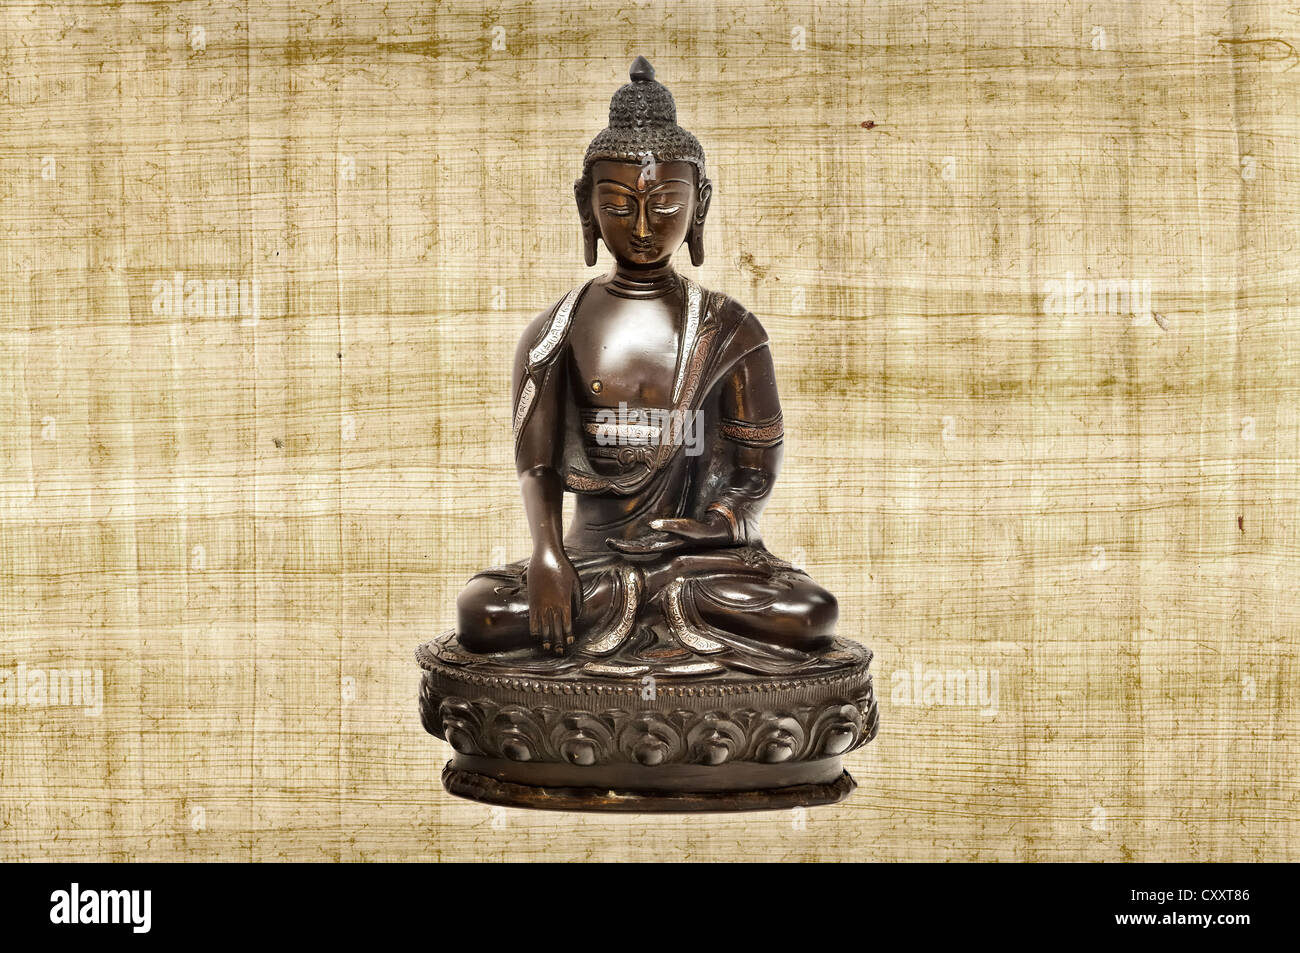 Tibetan Buddha statue made of bronze - Stock Image